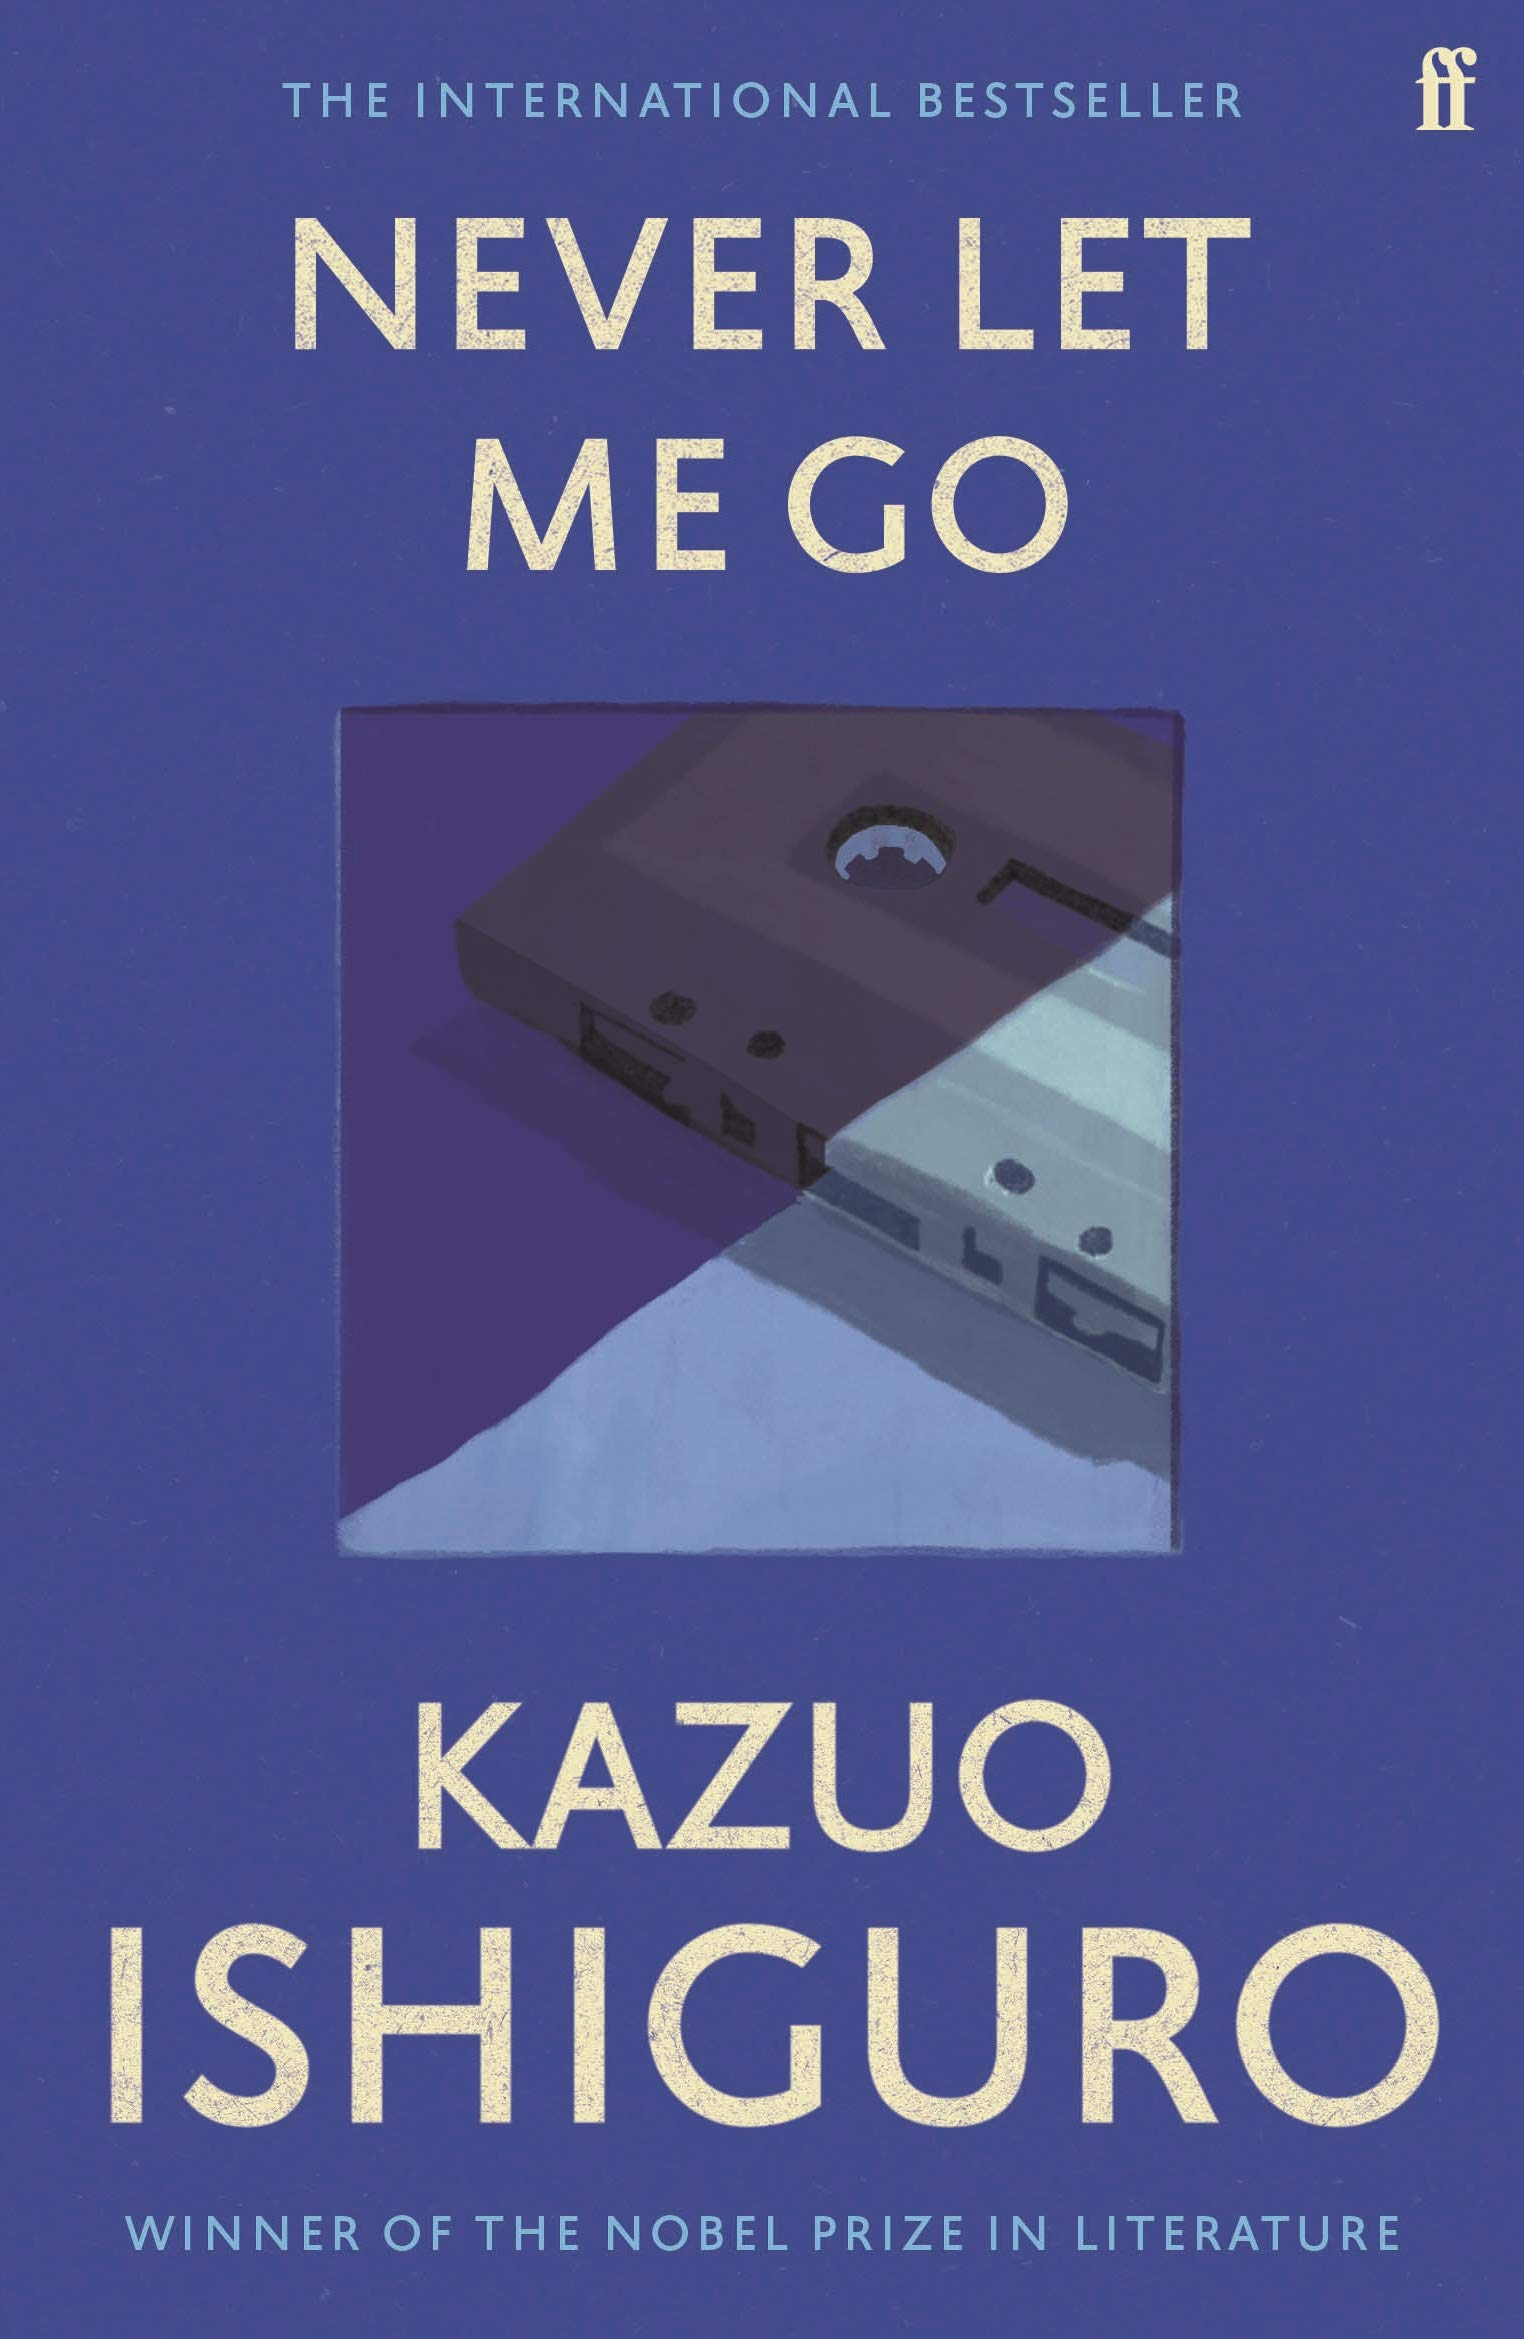 Buy Never Let Me Go Book Online at Low Prices in India   Never Let Me Go  Reviews & Ratings - Amazon.in